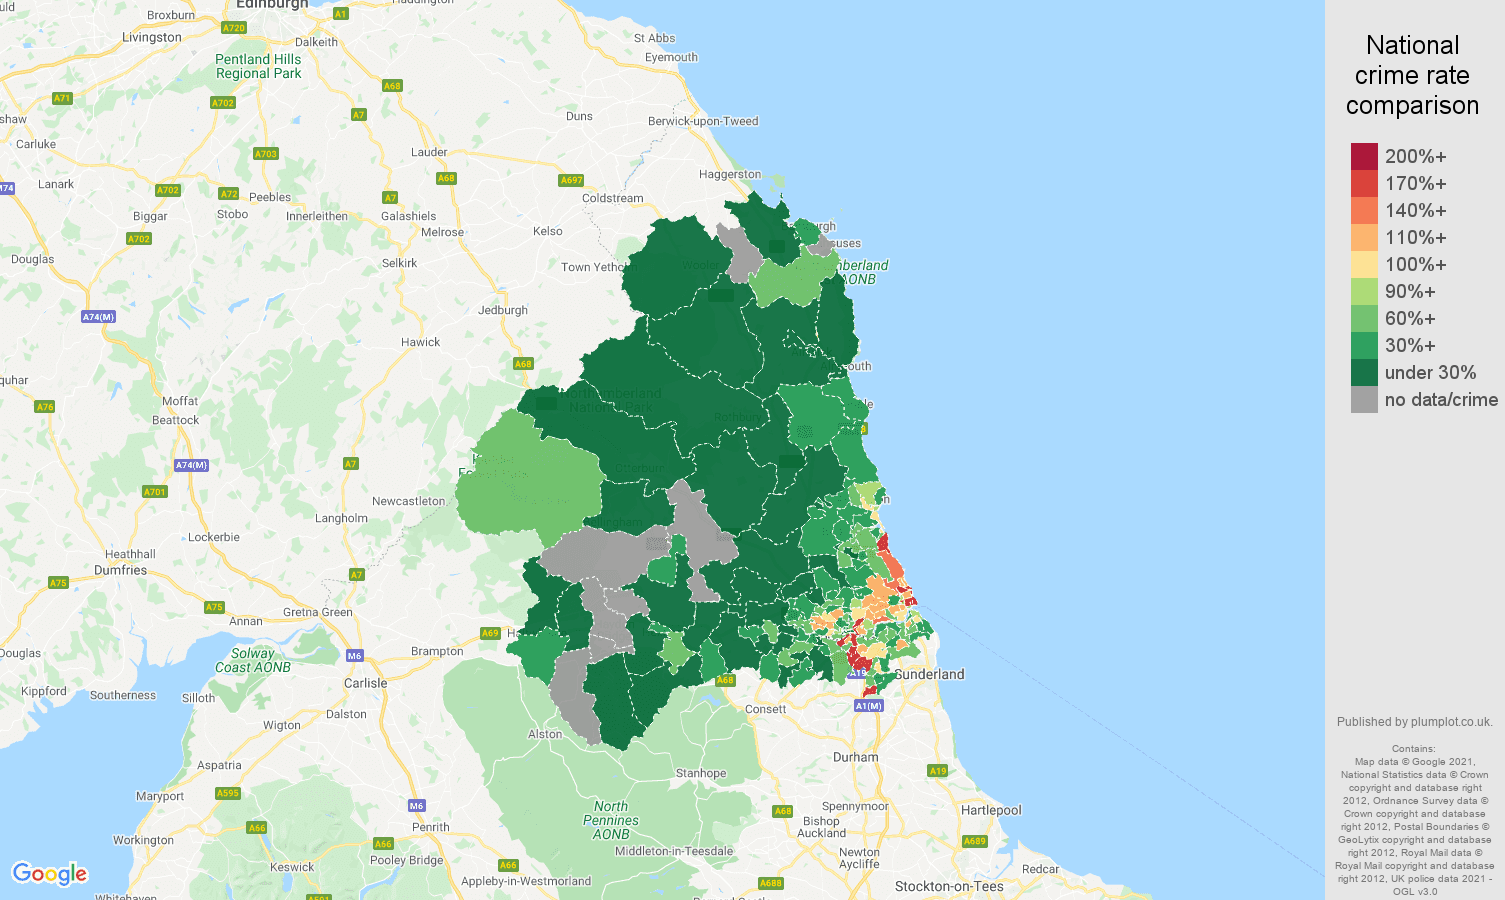 Newcastle upon Tyne vehicle crime rate comparison map